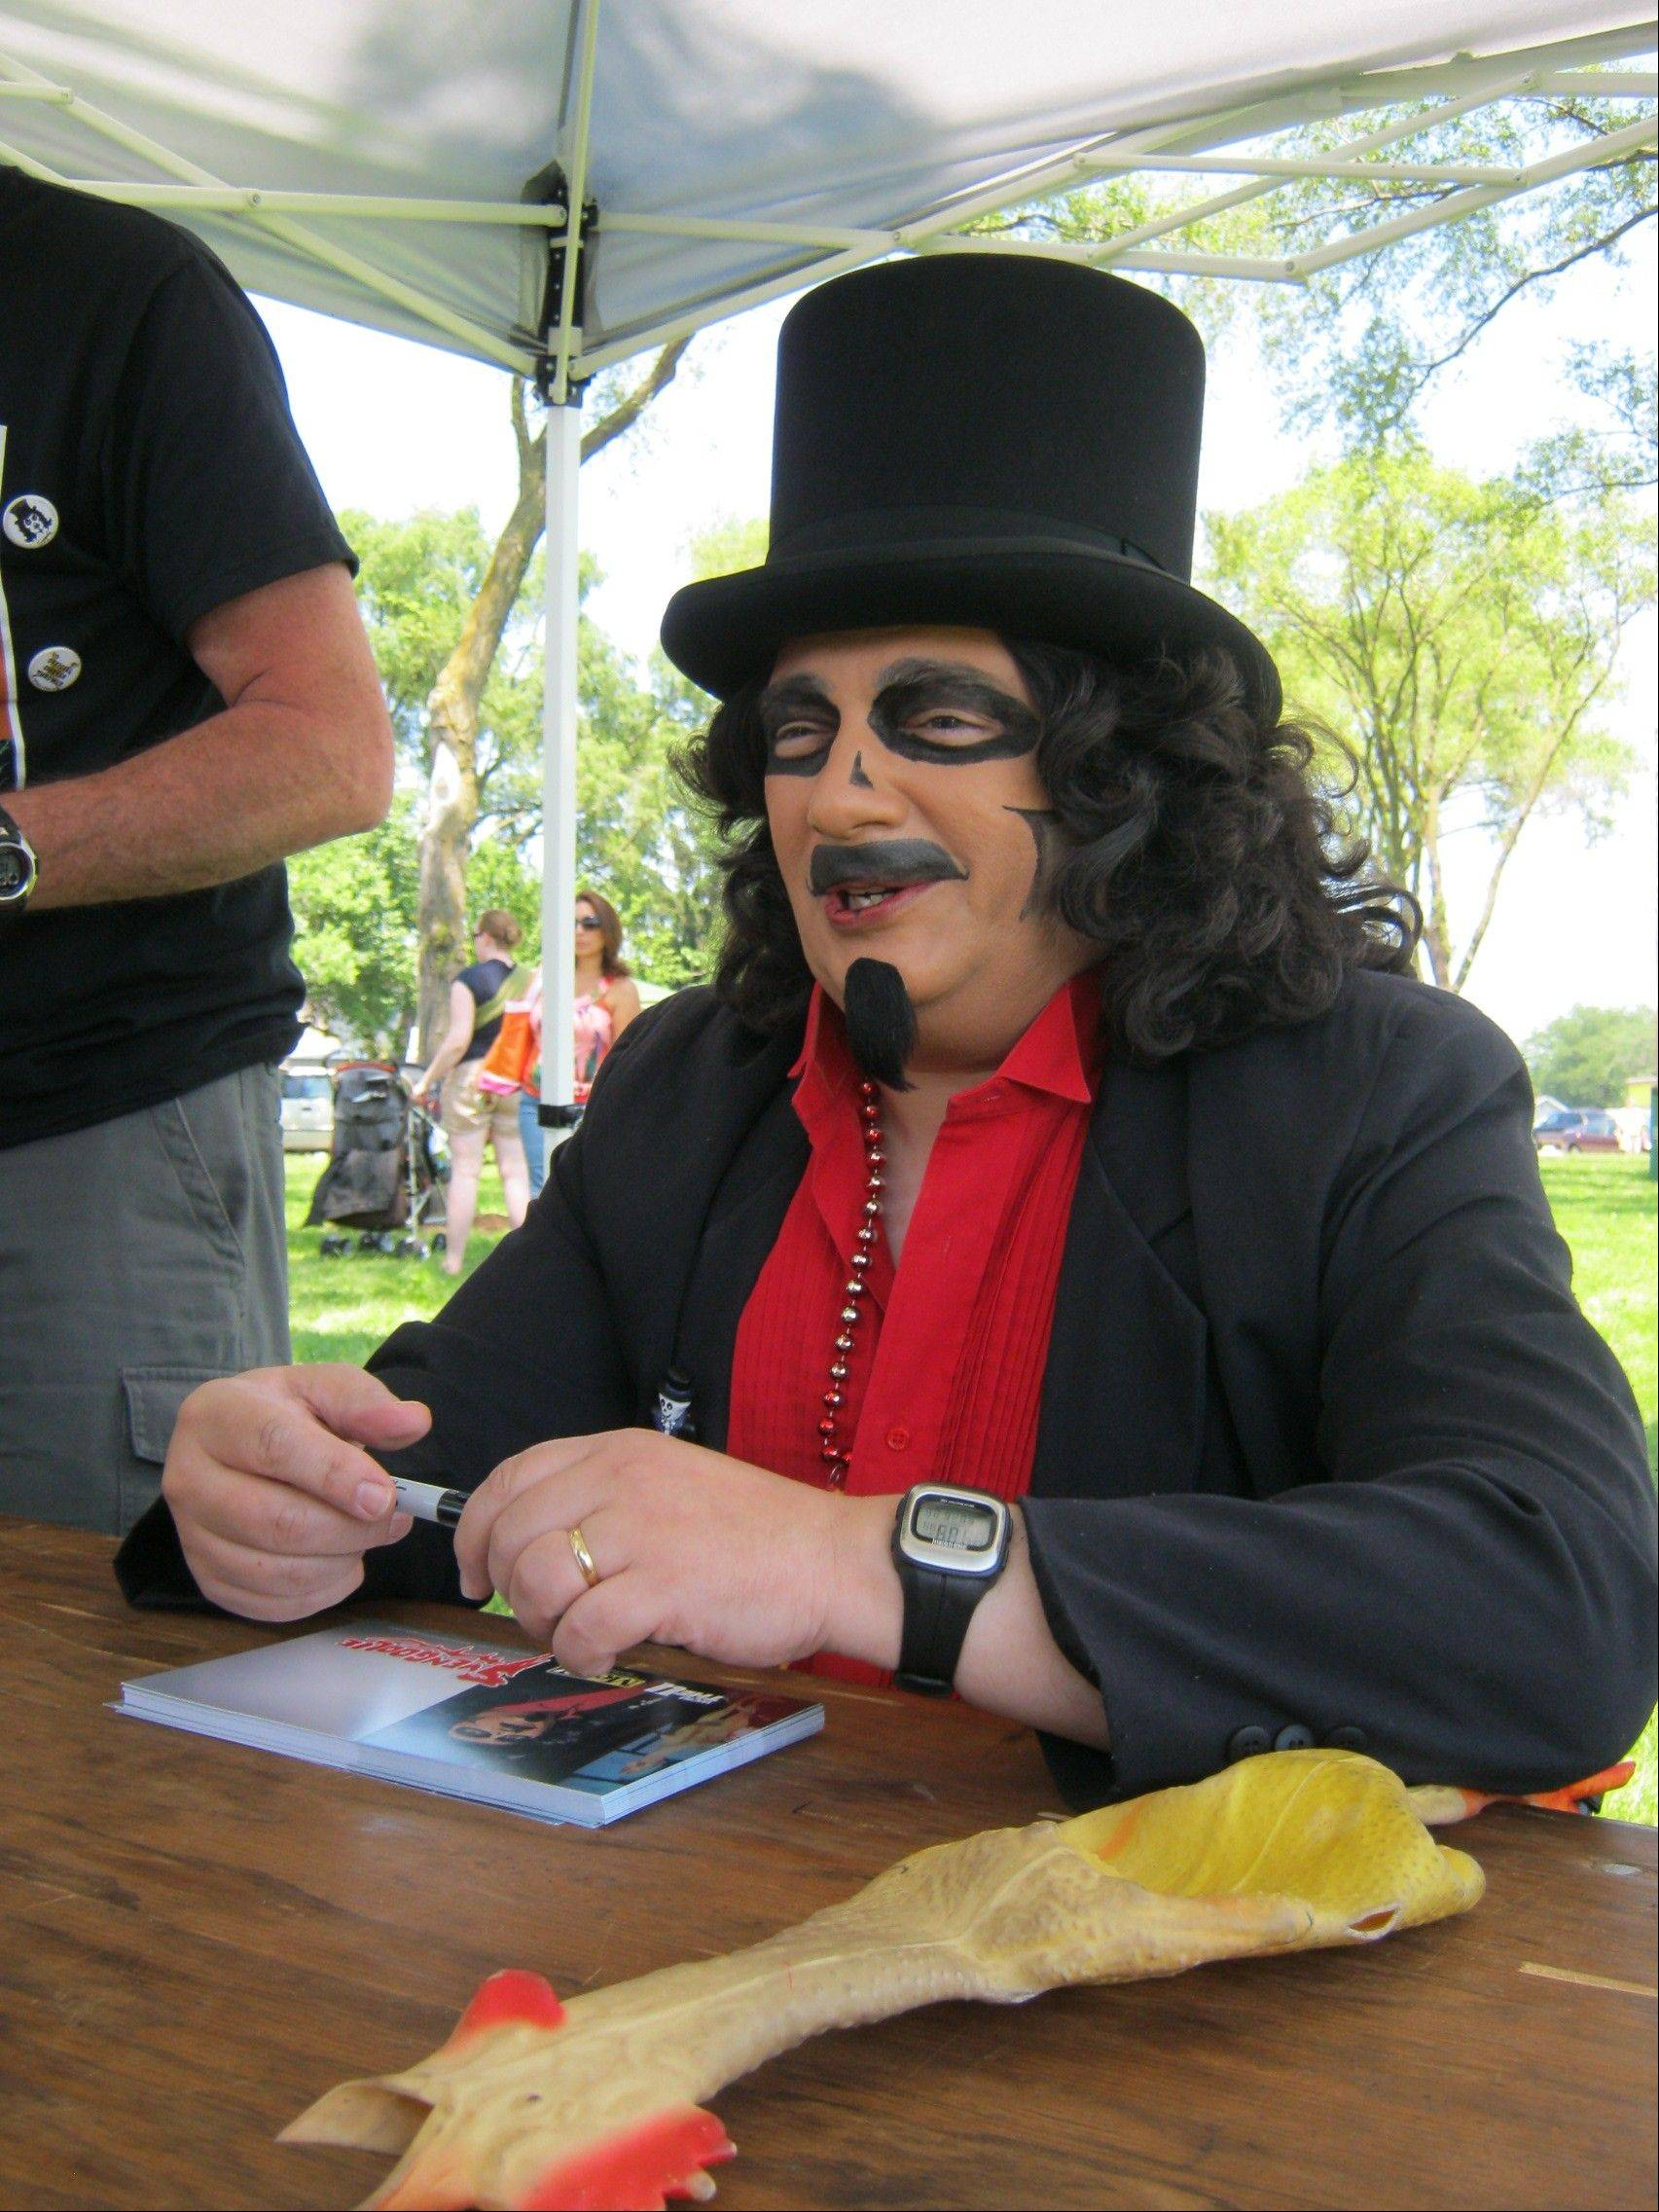 Svengoolie will make a return appearance to the District 59 foundation benefit.